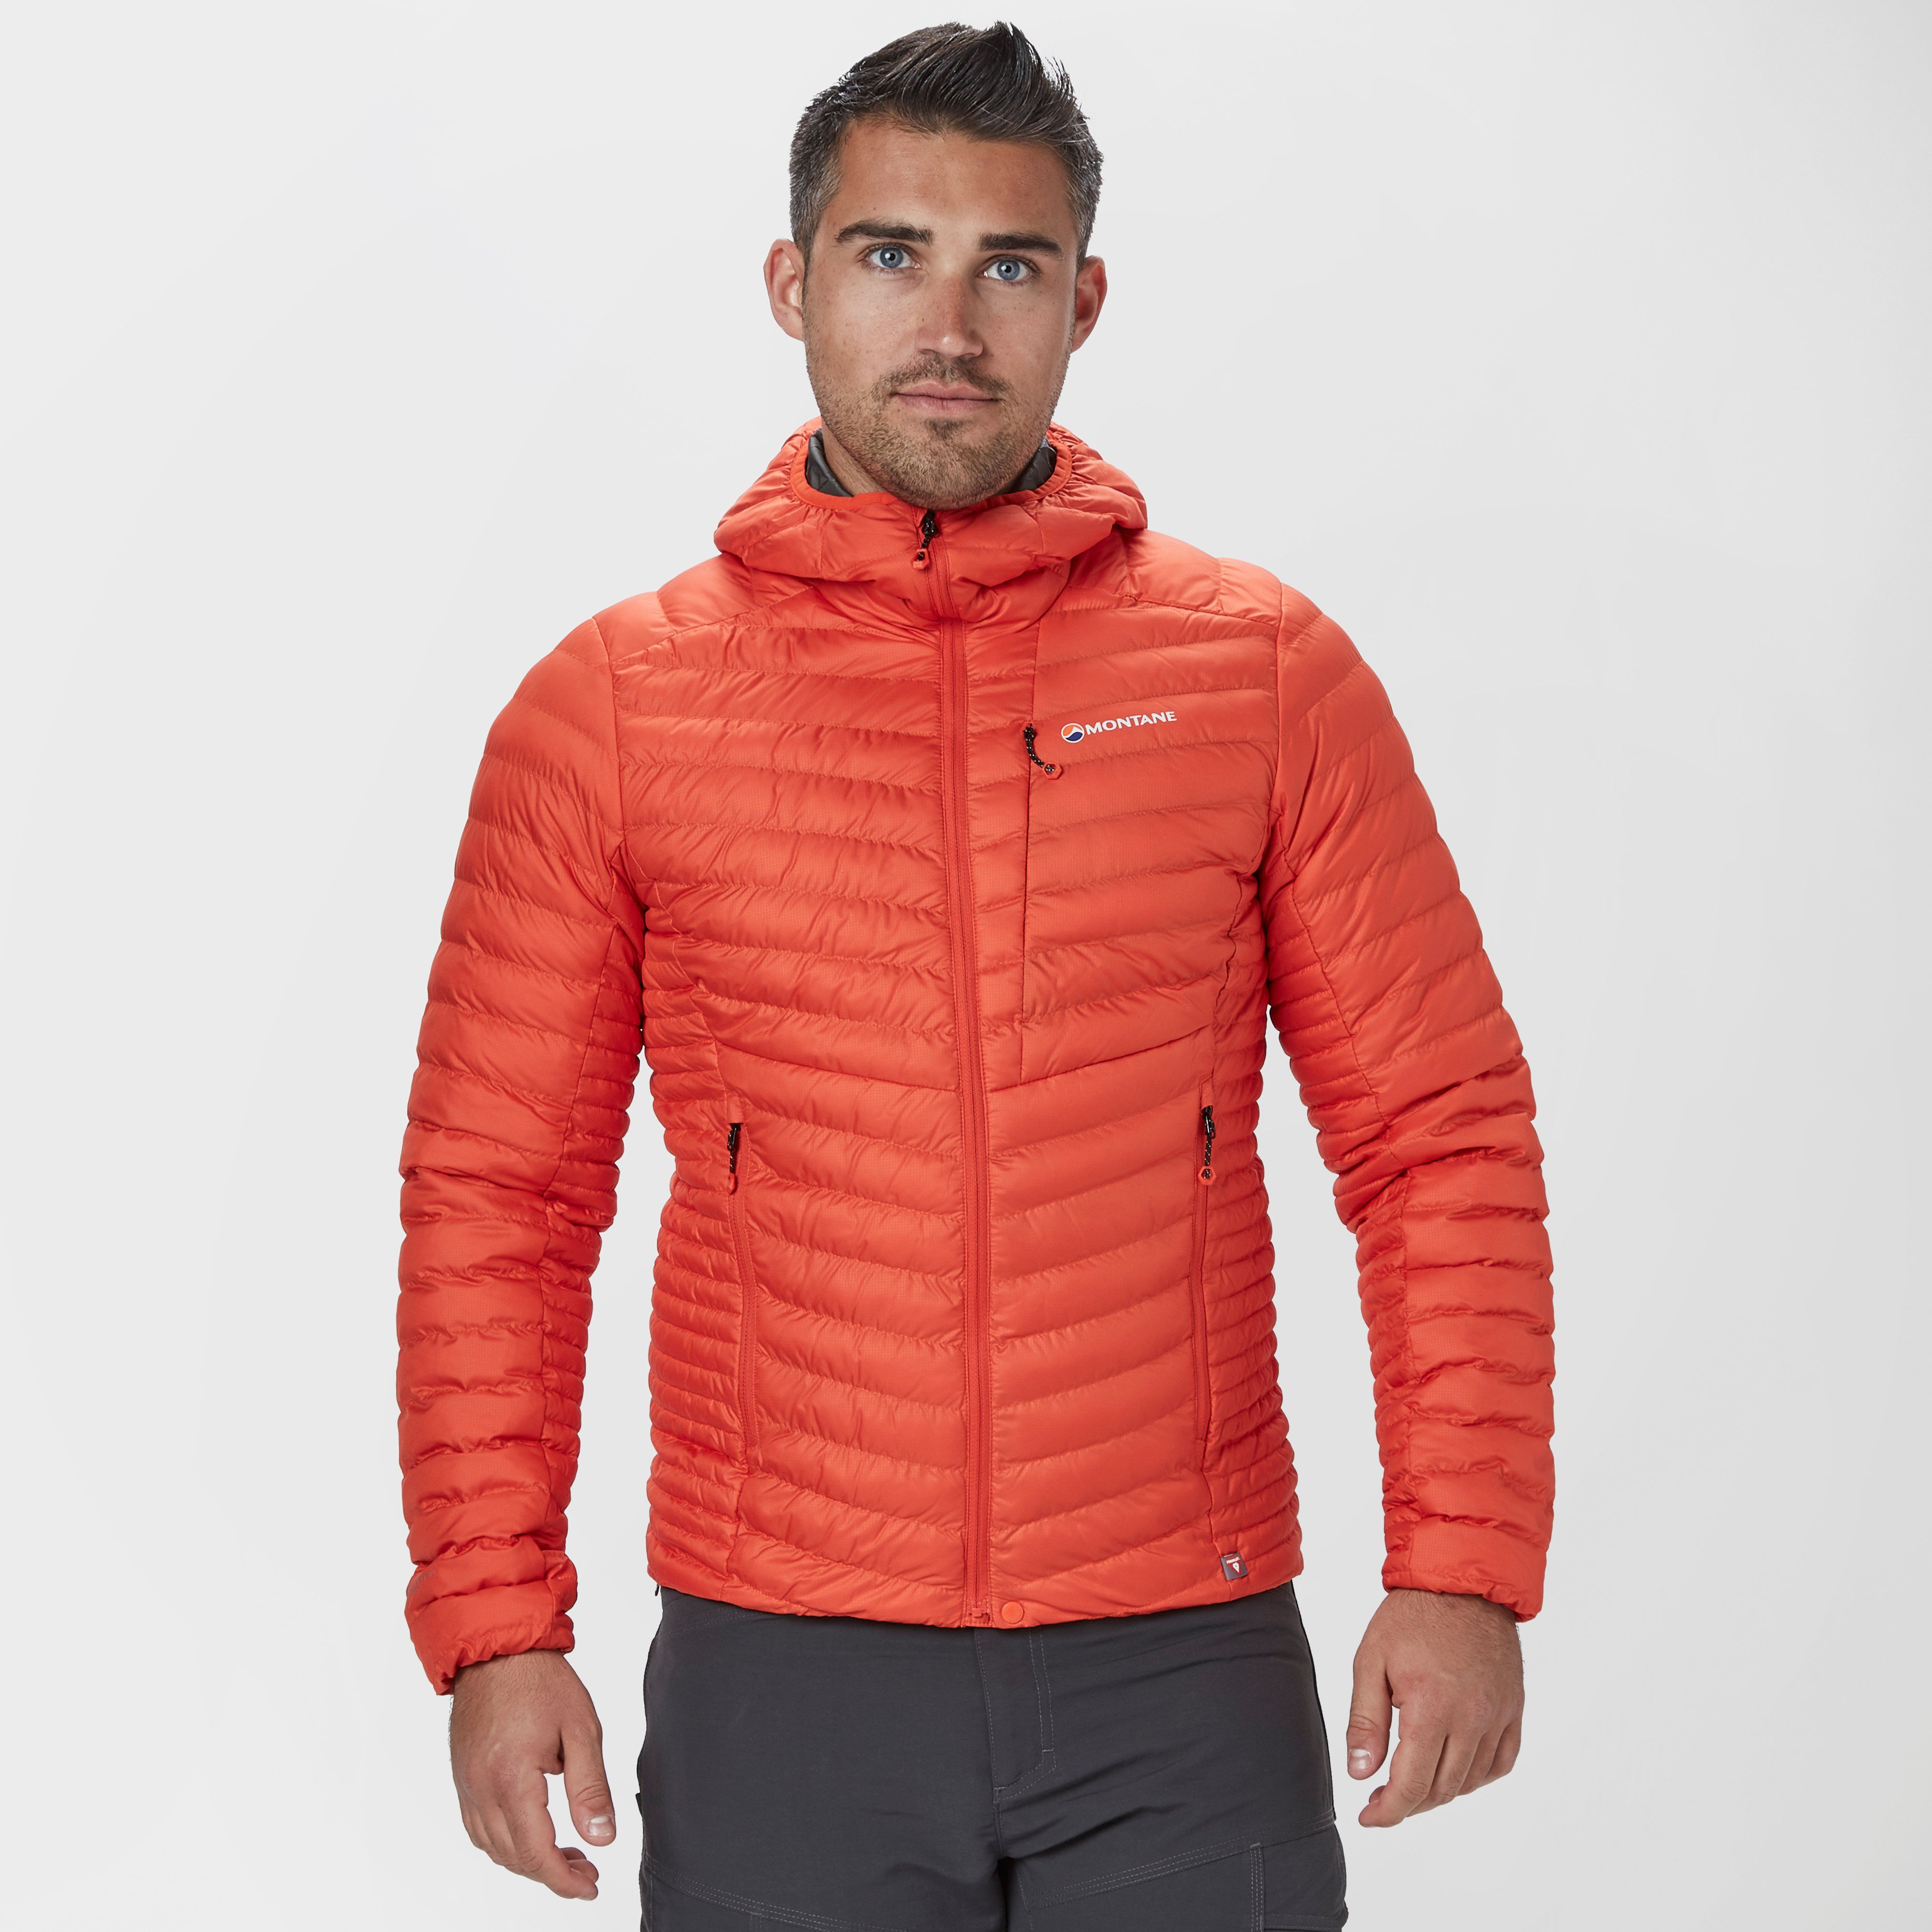 MONTANE Men's Icarus Insulated Jacket